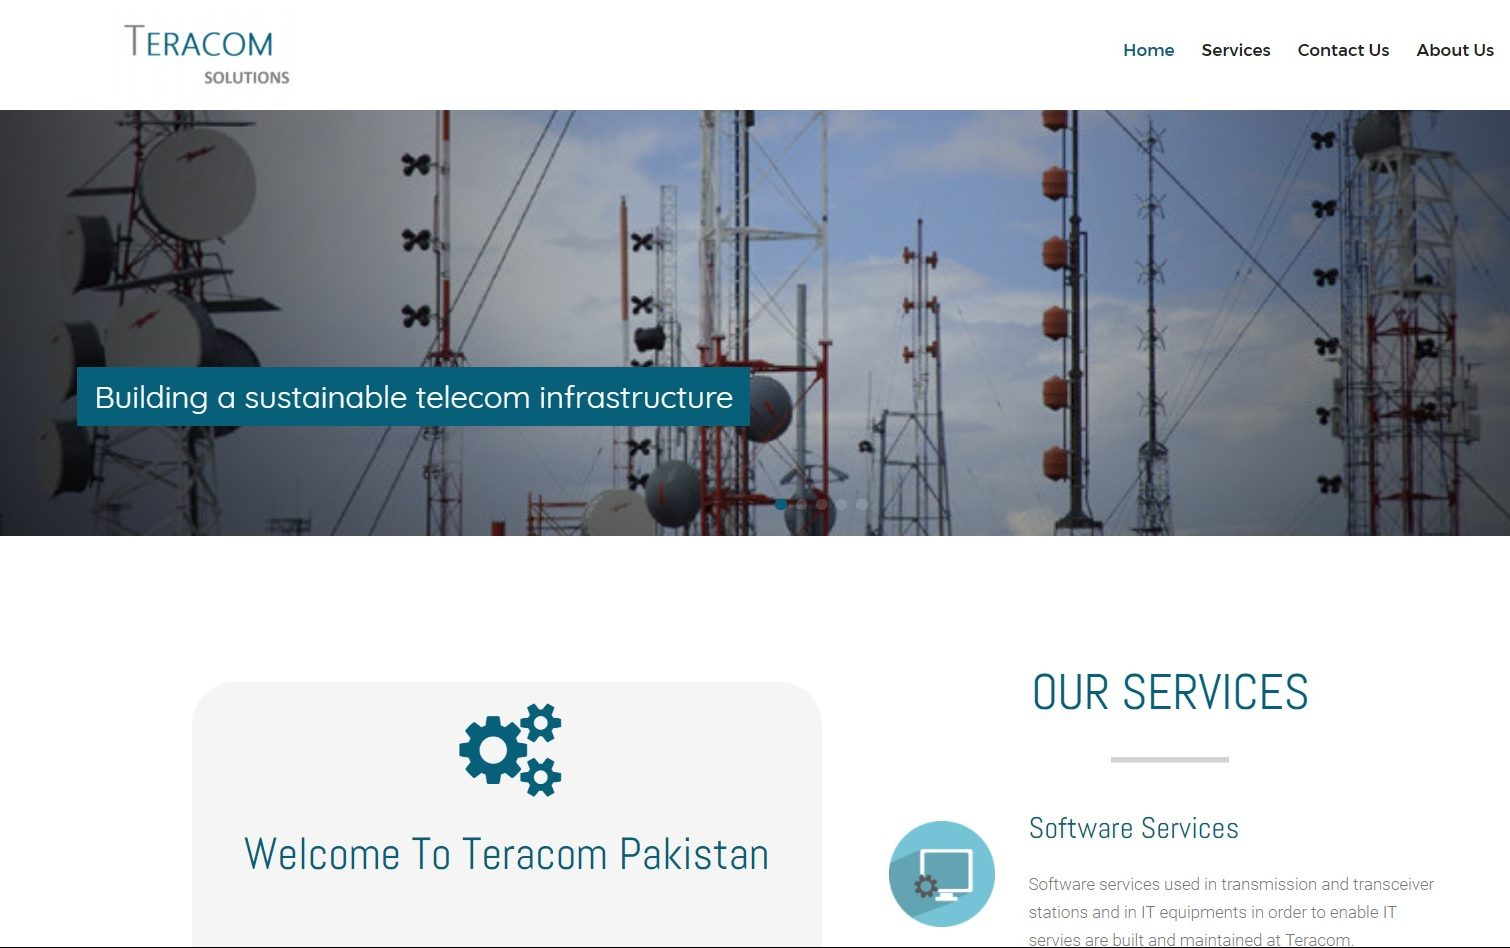 TERACOM SOLUTIONS